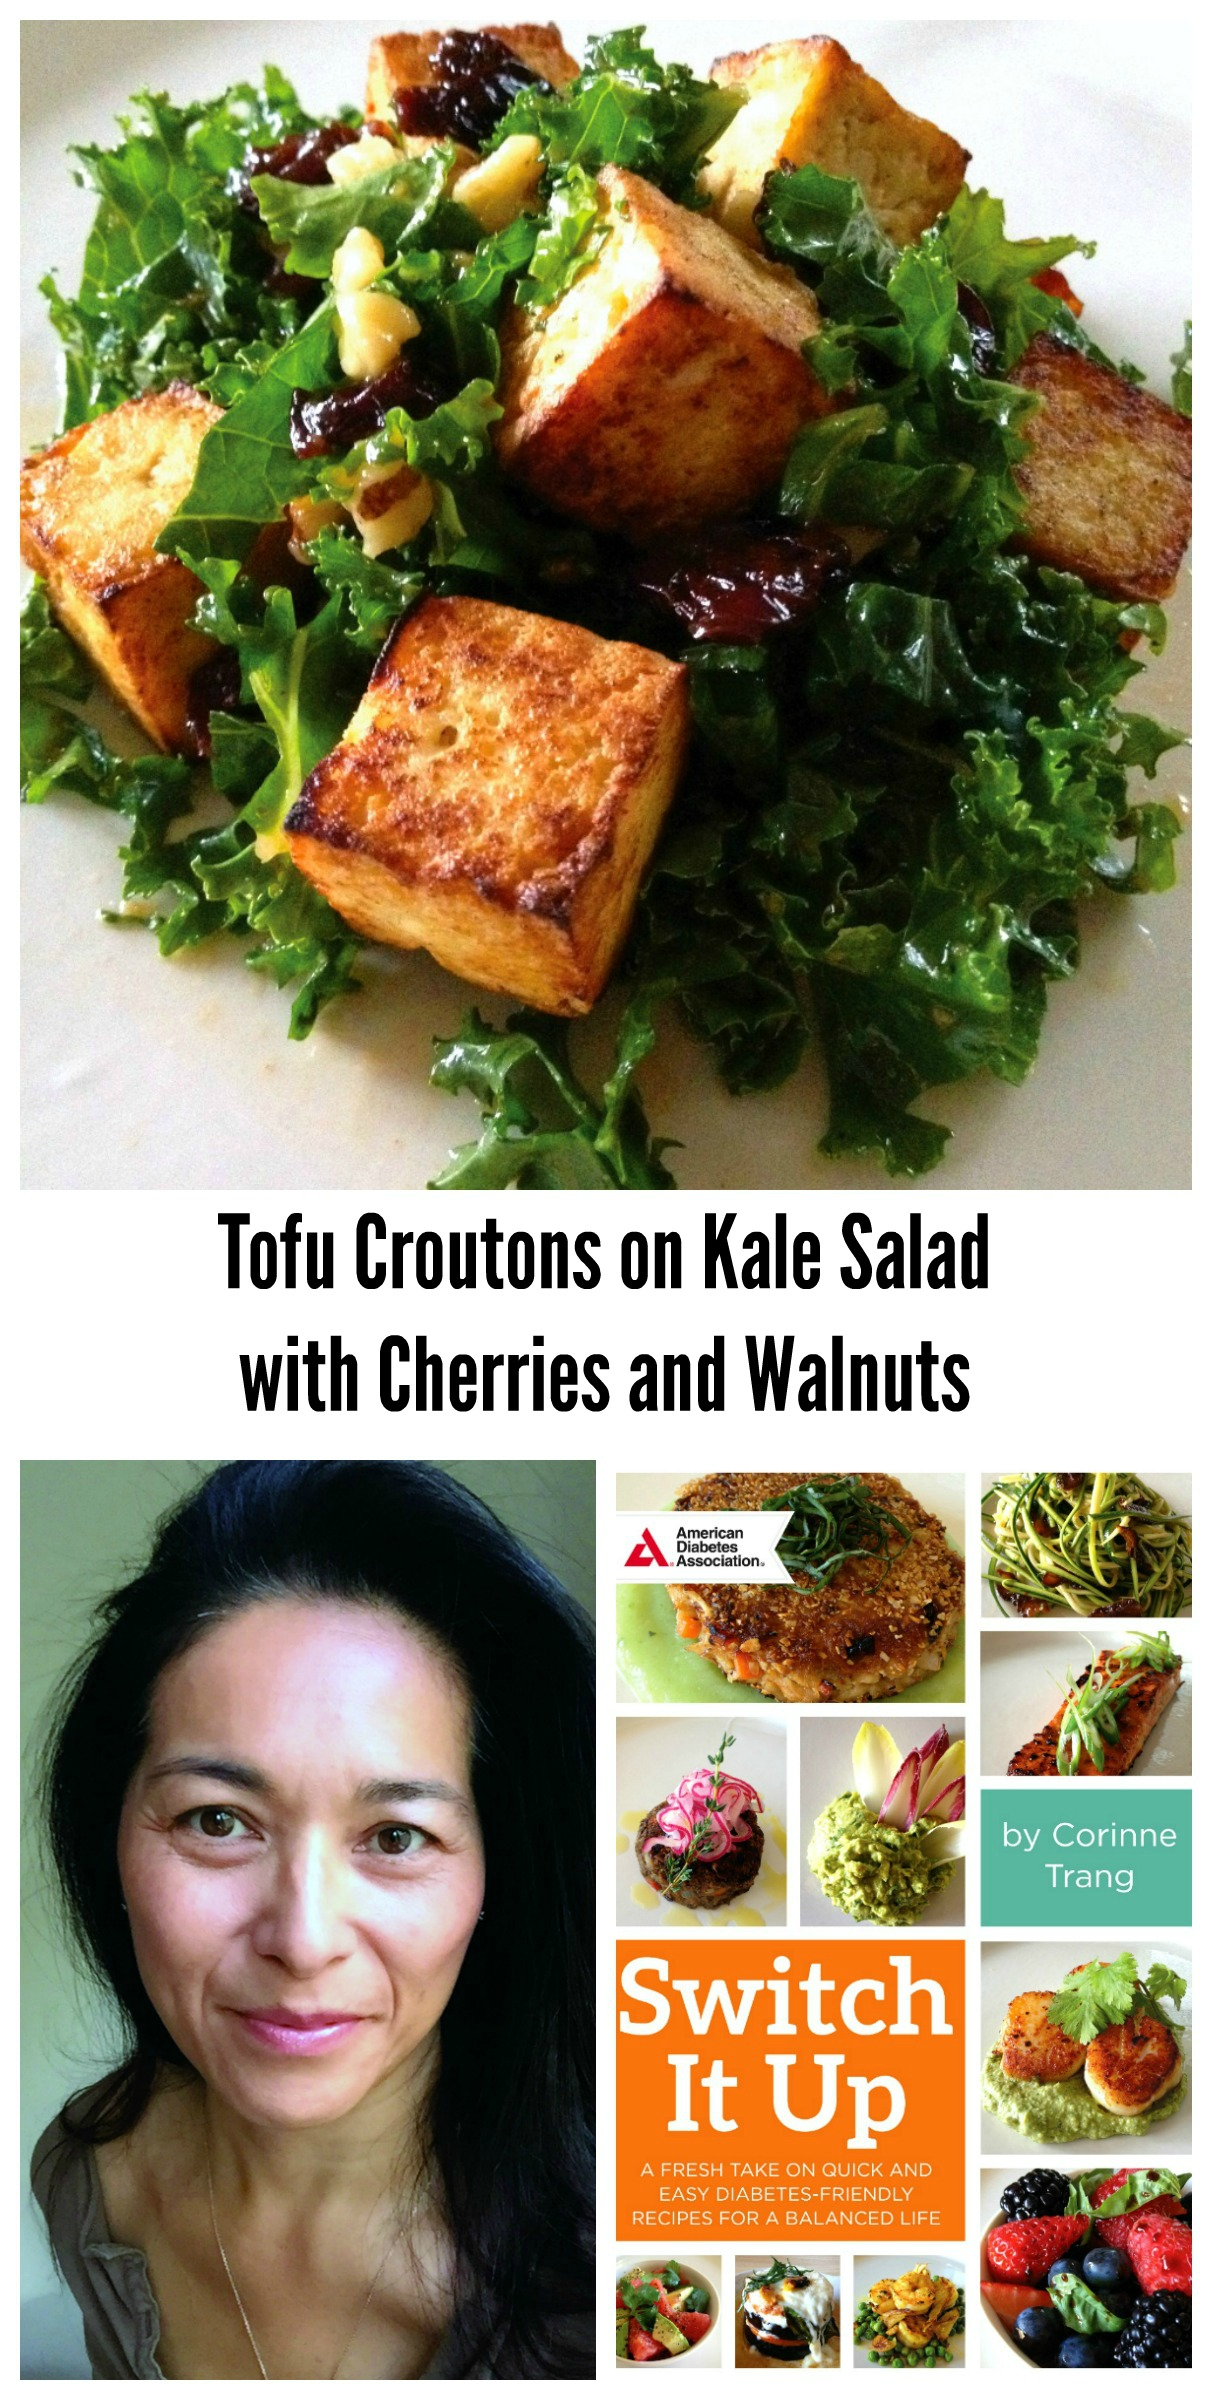 Tofu Croutons on Kale Salad with Cherries and Walnuts